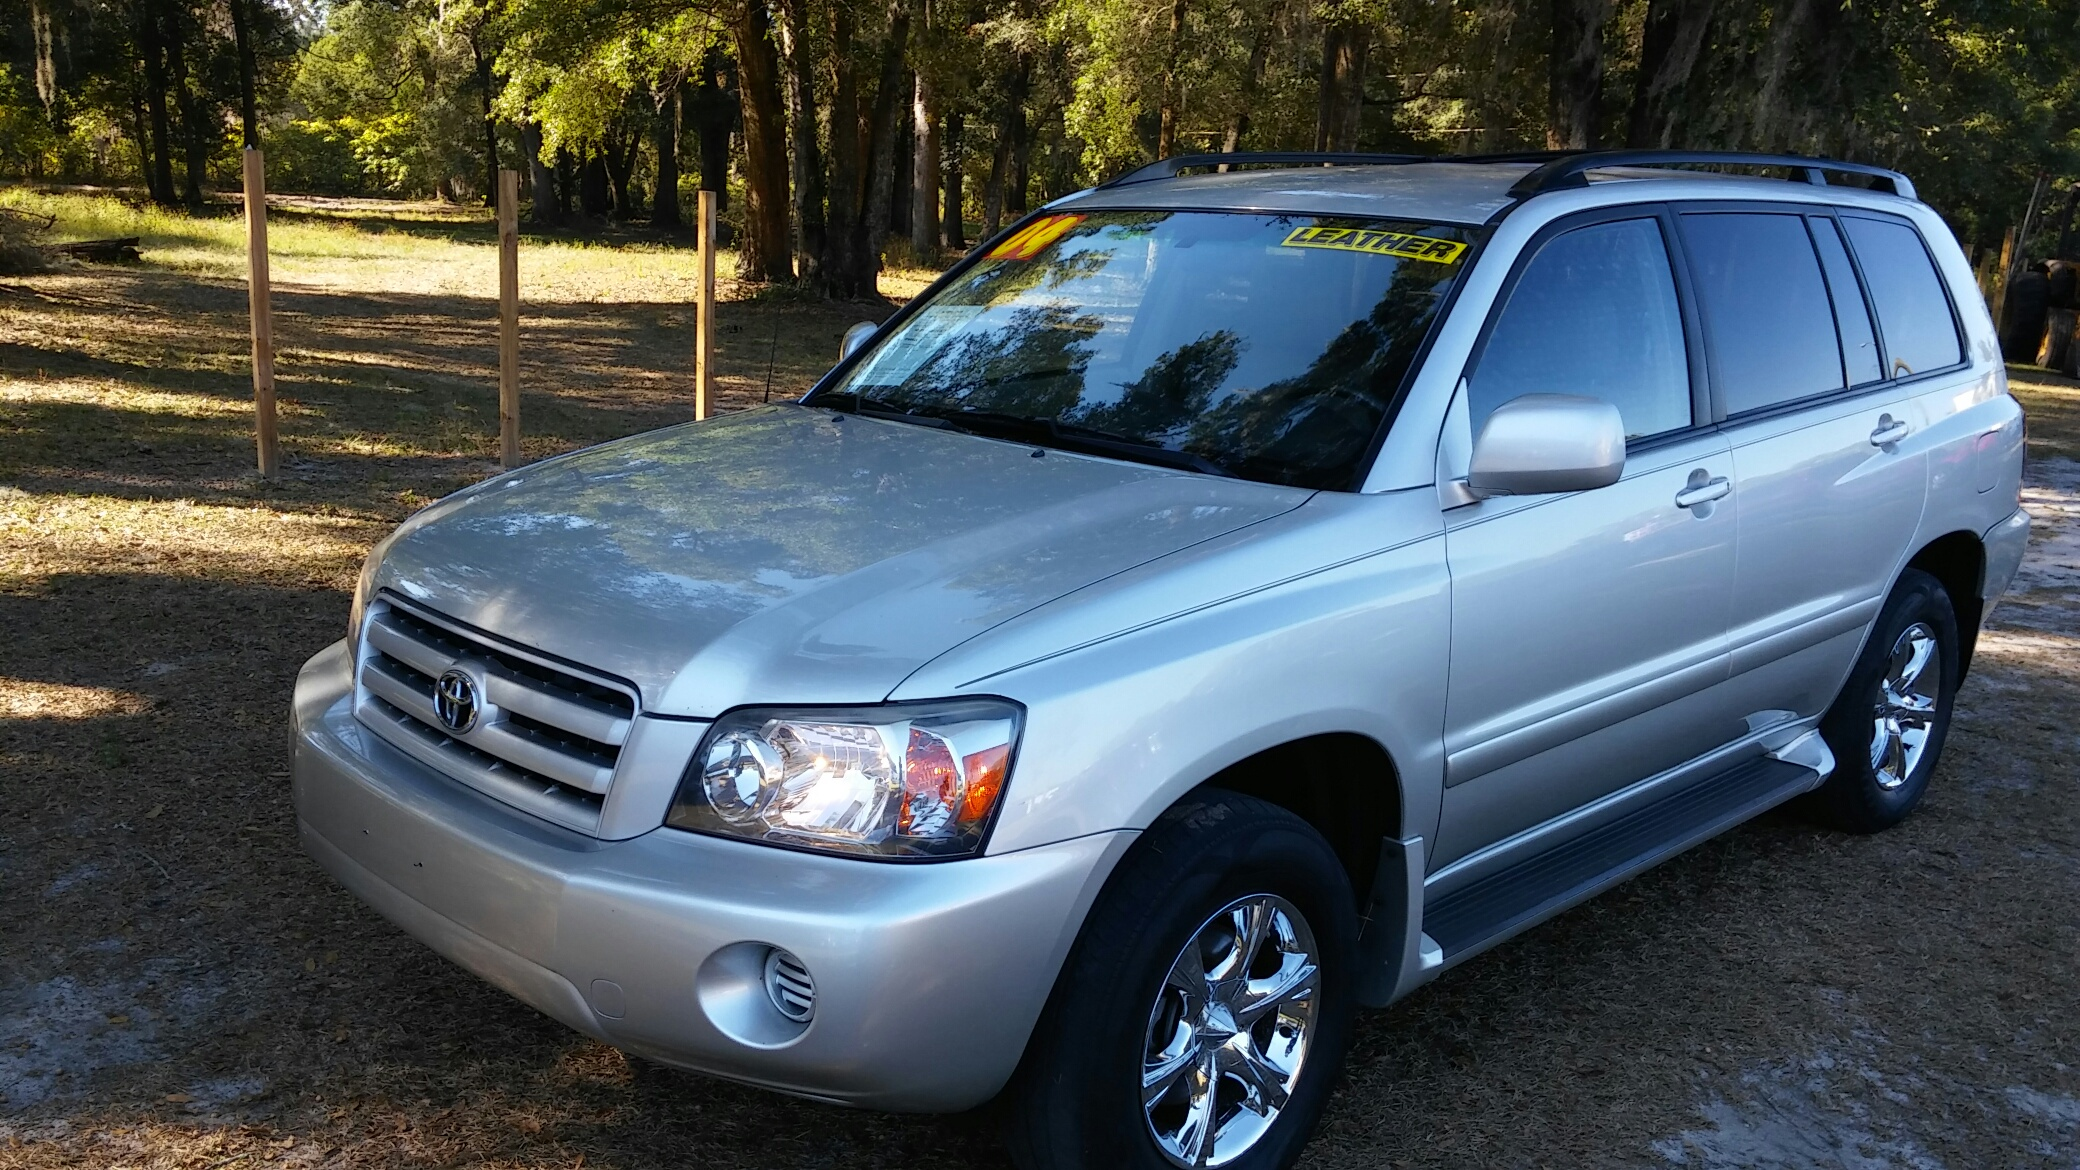 2004 Toyota Highlander 4x4 $1,800.00 down